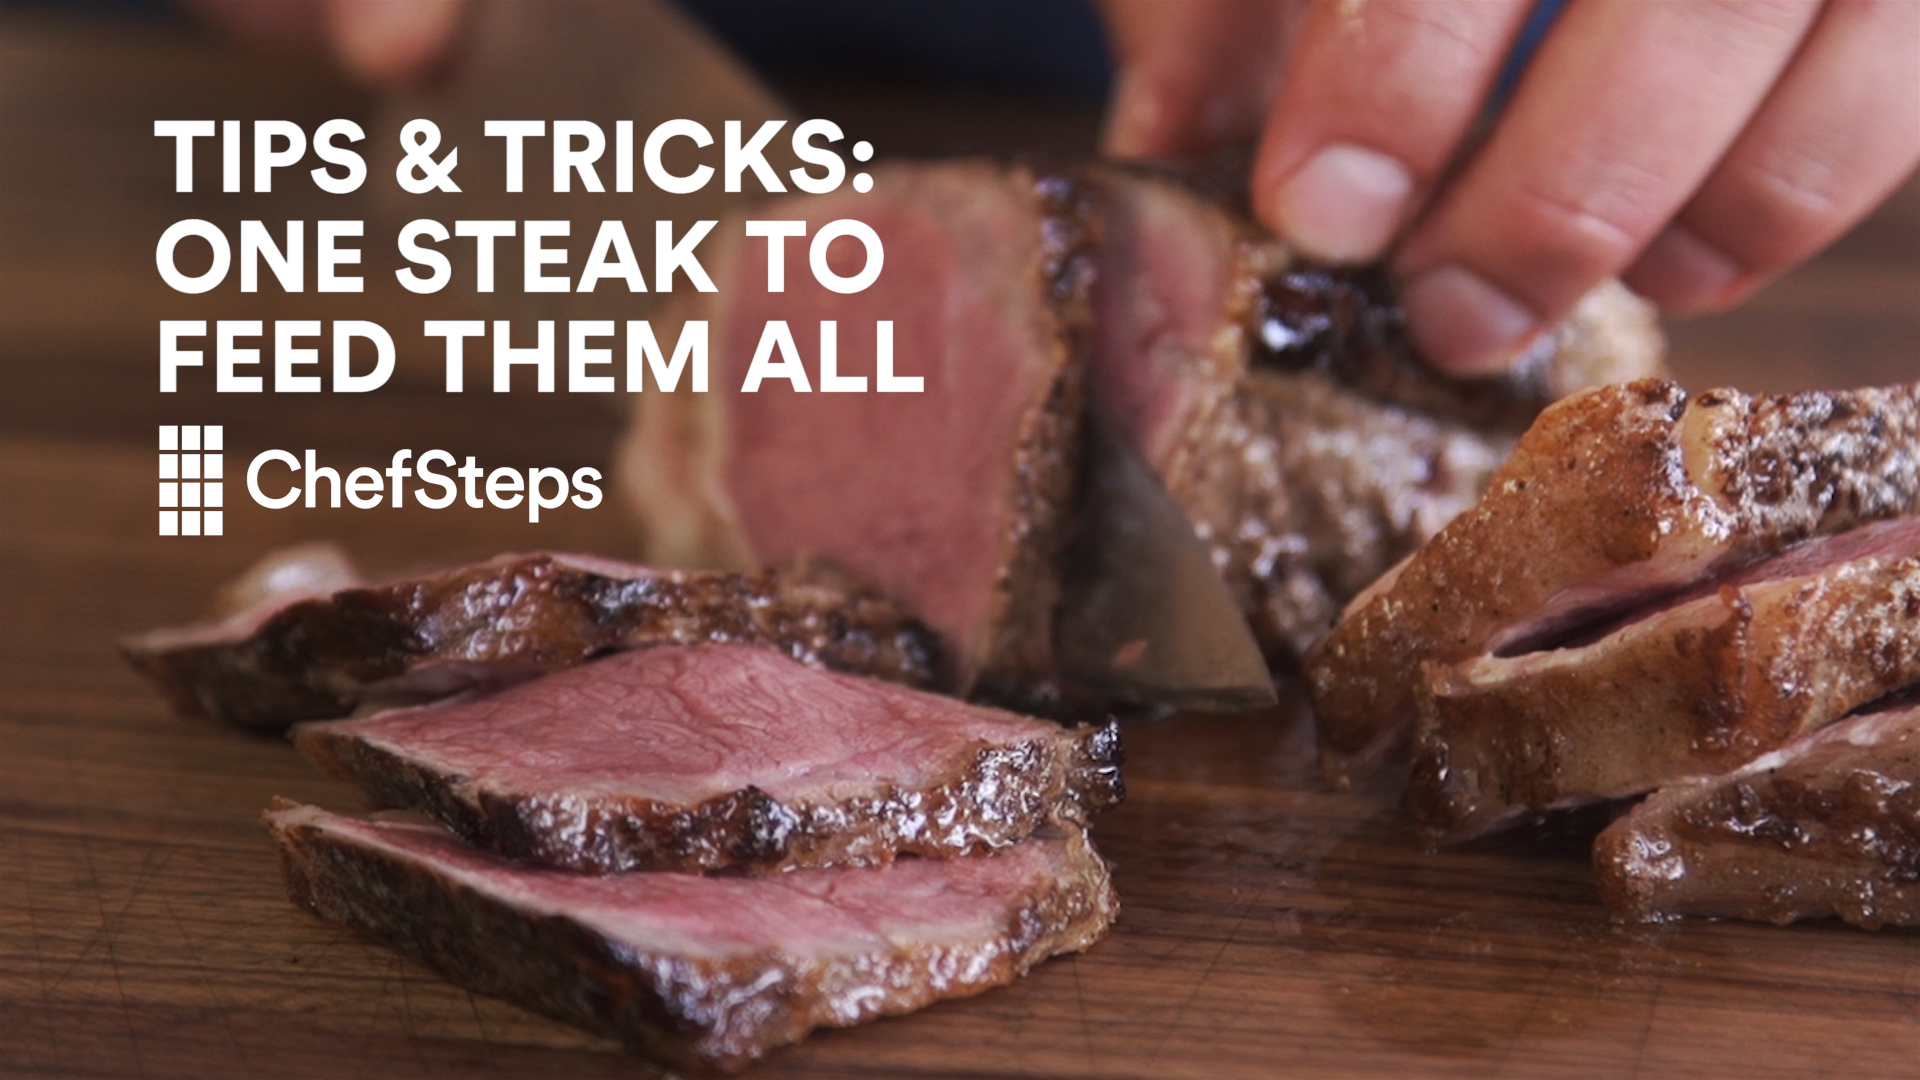 Video: One Steak to Feed Them All